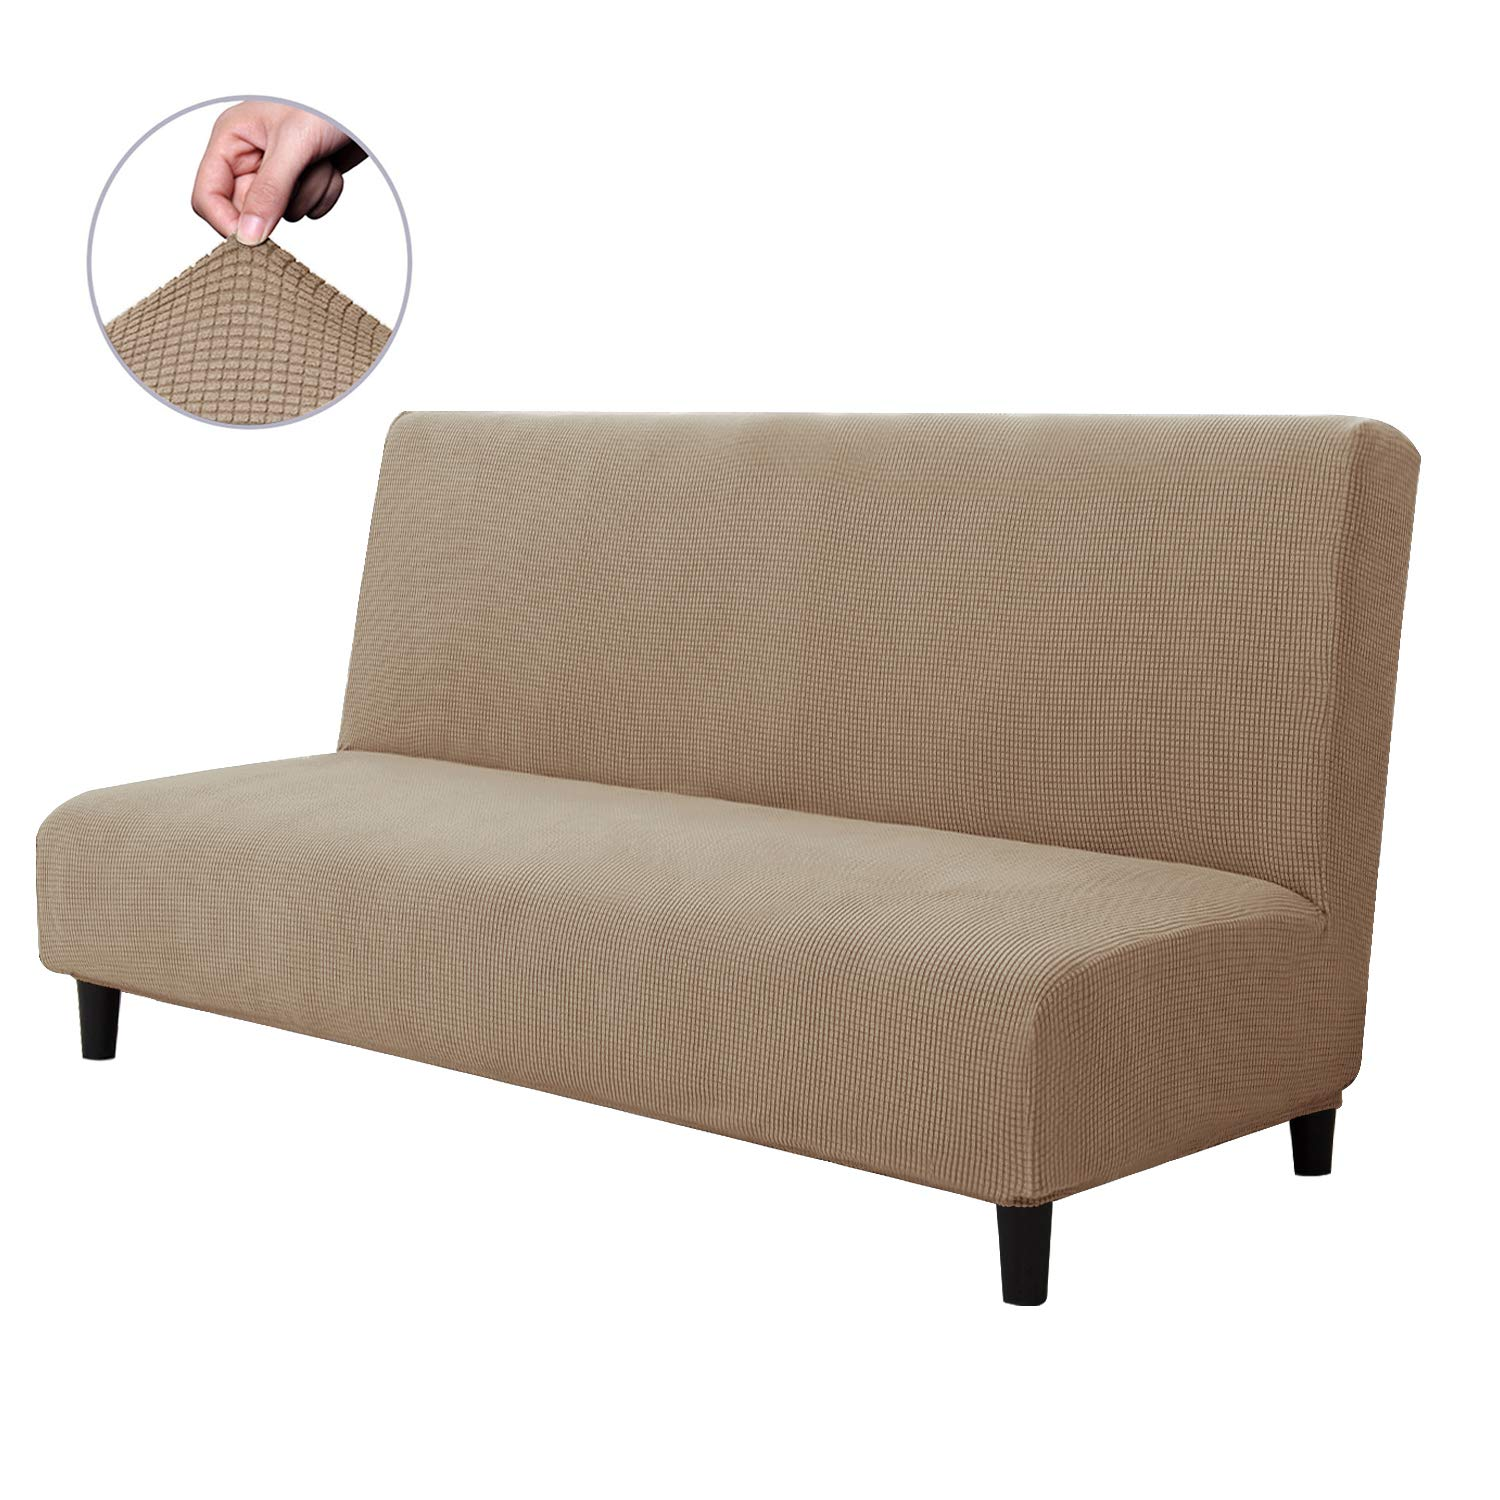 CHUN YI Armless Sofa Slipcover Elastic Fitted Full Folding Sofa Bed Cover Without Armrests,Removable Machine Washable Non-Slip Furniture Protector for Futon Couch Bench (Sofa, Gray)